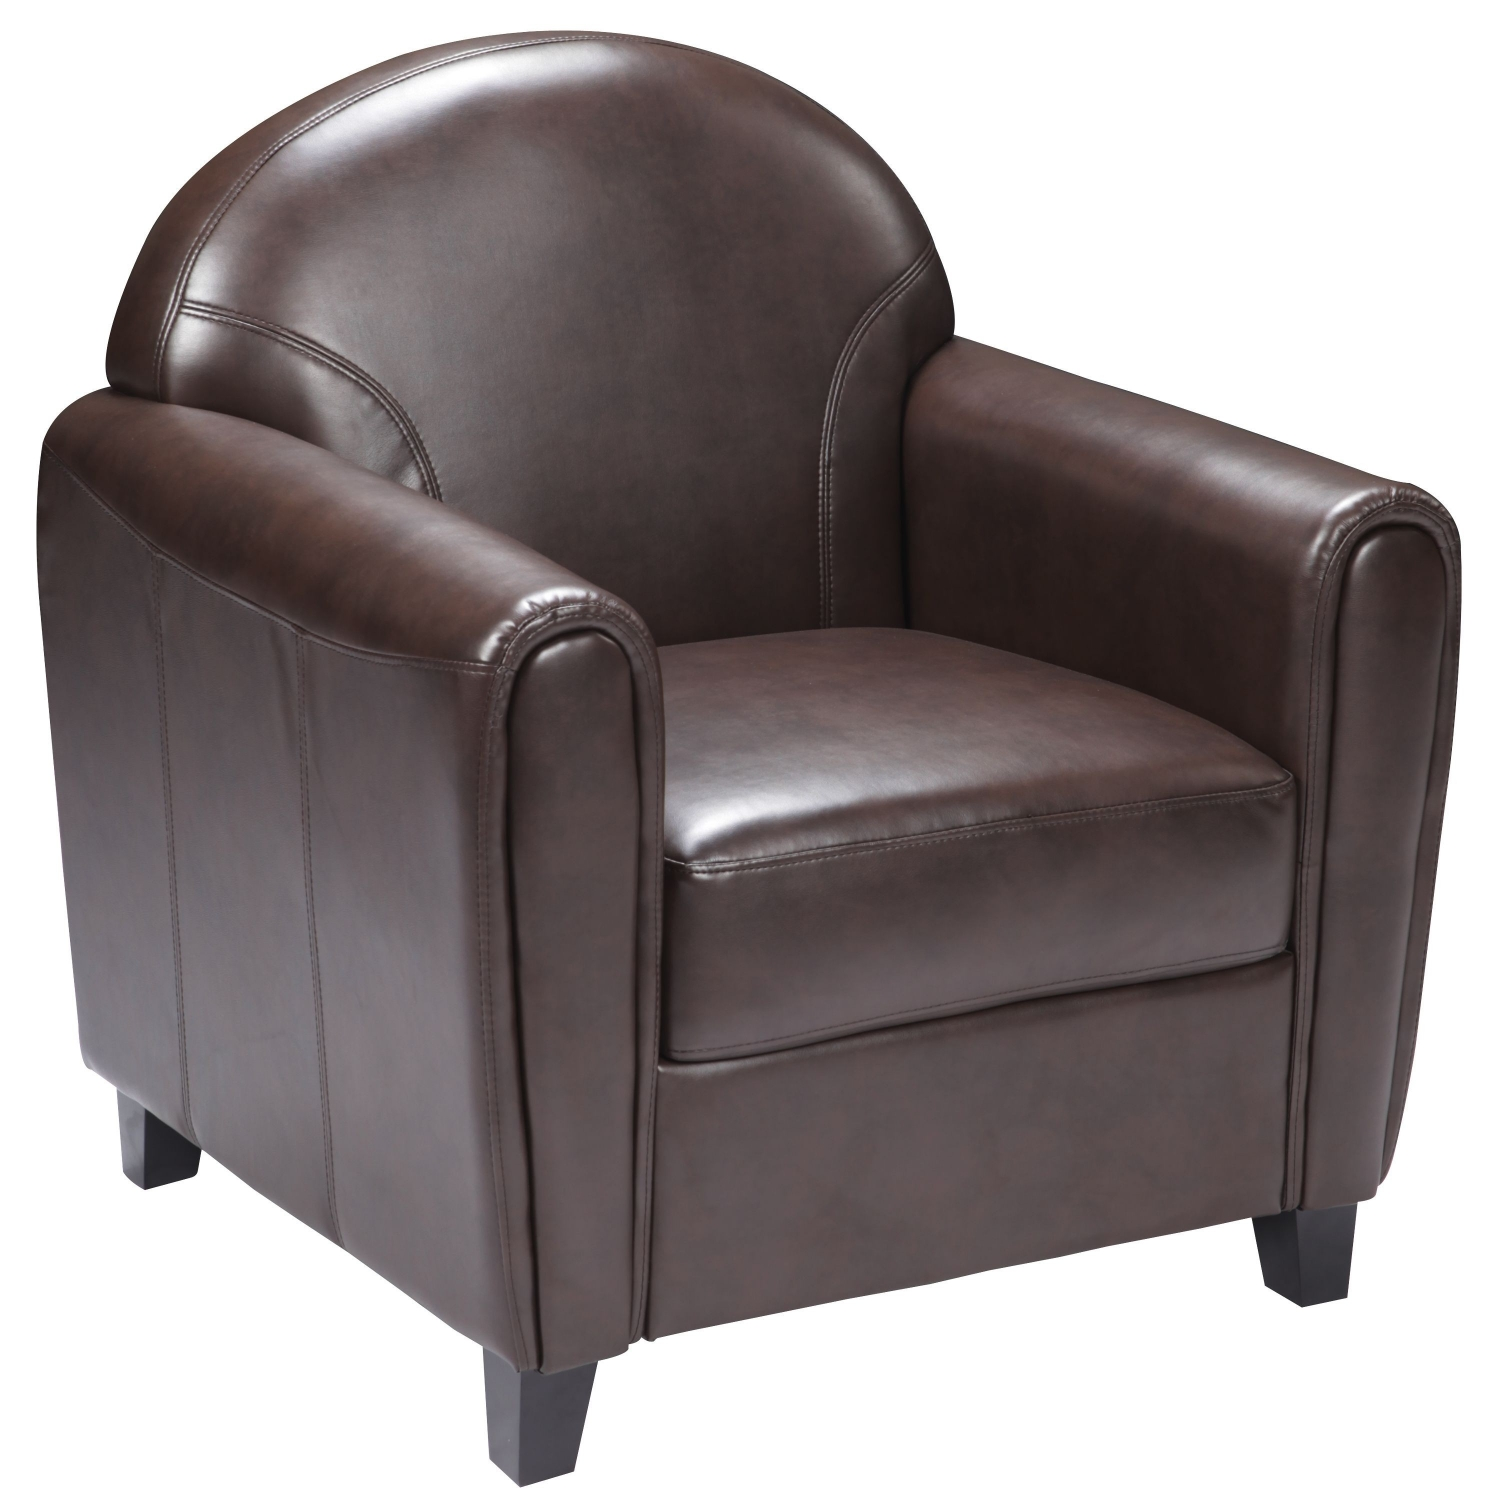 Flash Furniture BT-828-1-BN-GG HERCULES Envoy Series Brown Leather Chair